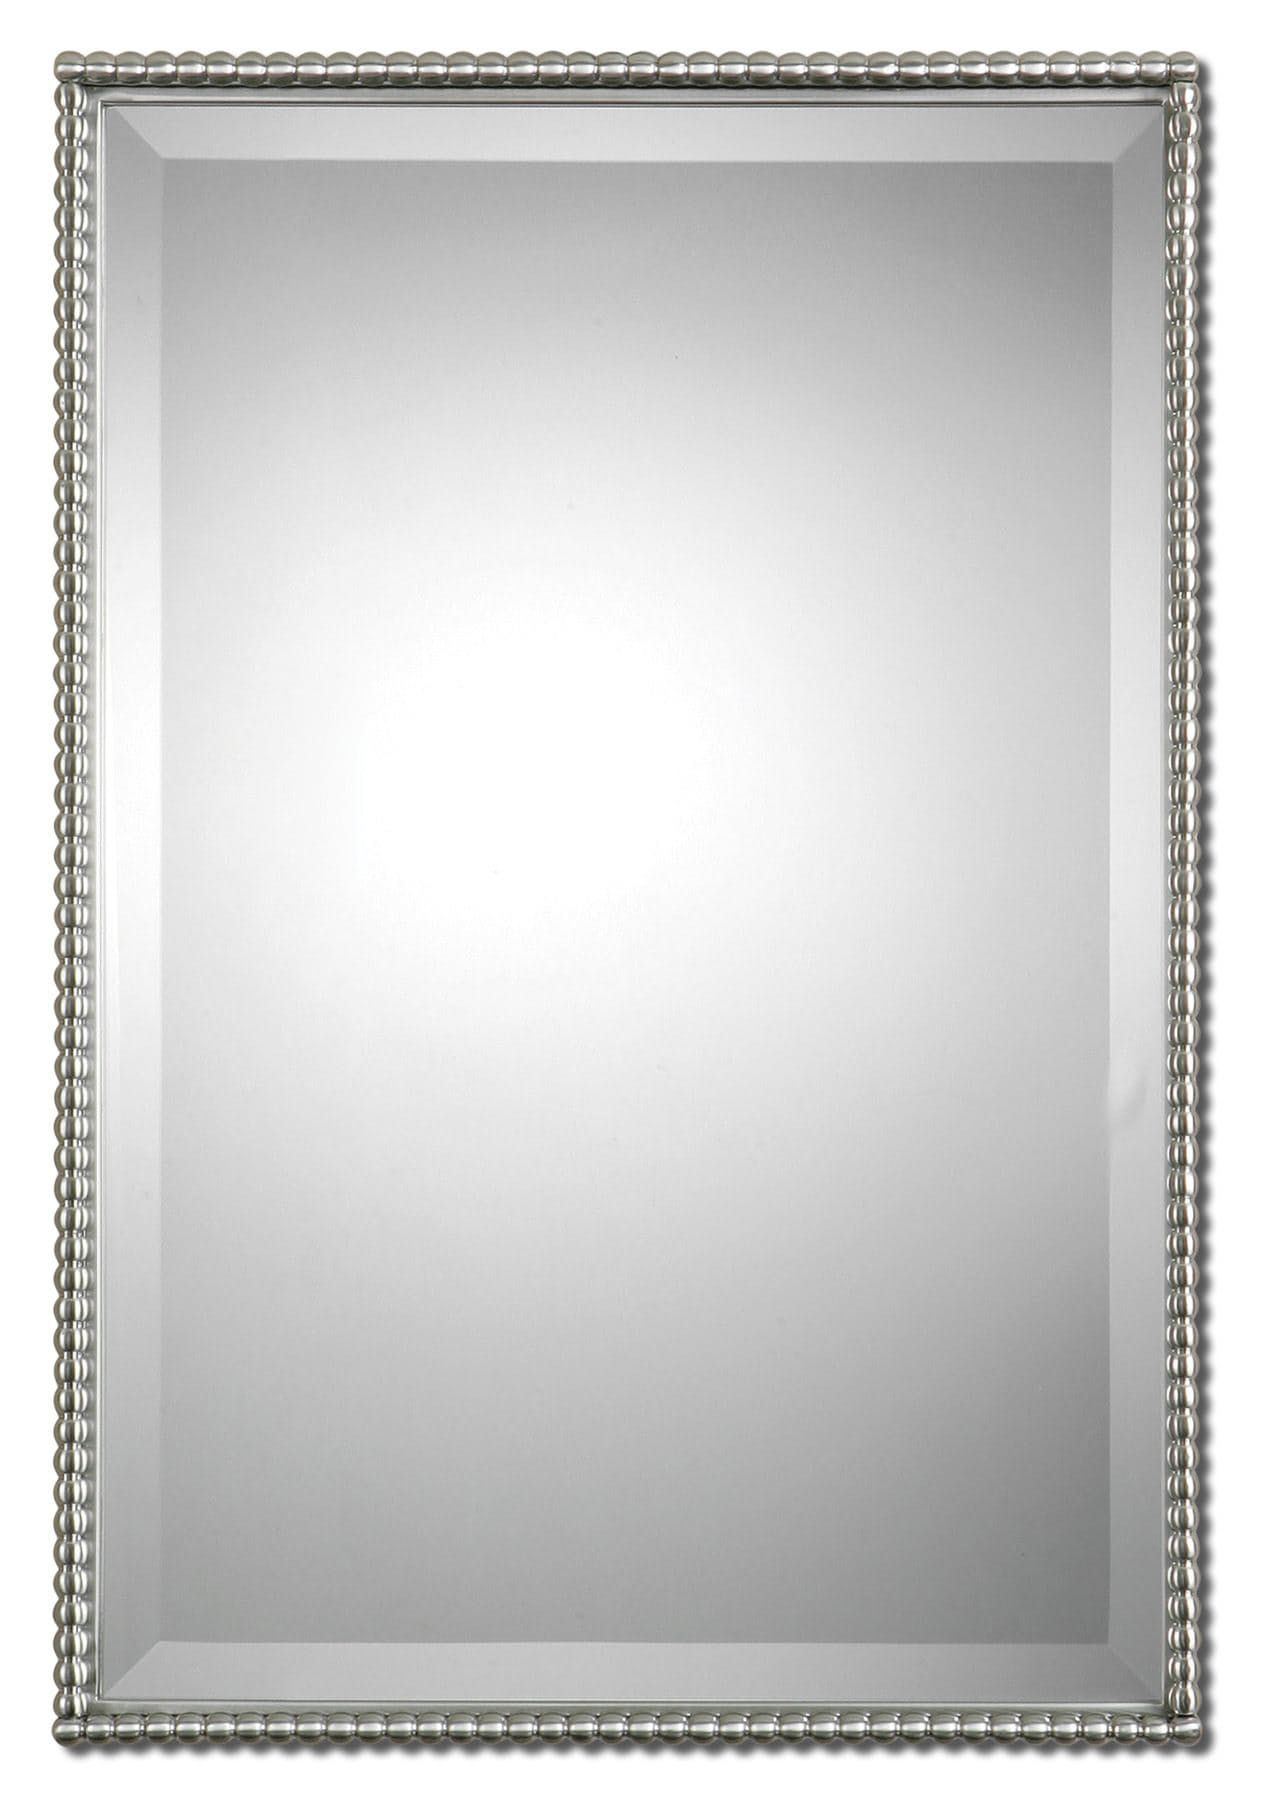 Decorative Brushed Nickel Mirror Brushed Nickel Metal Frame Features A Decorative Beading